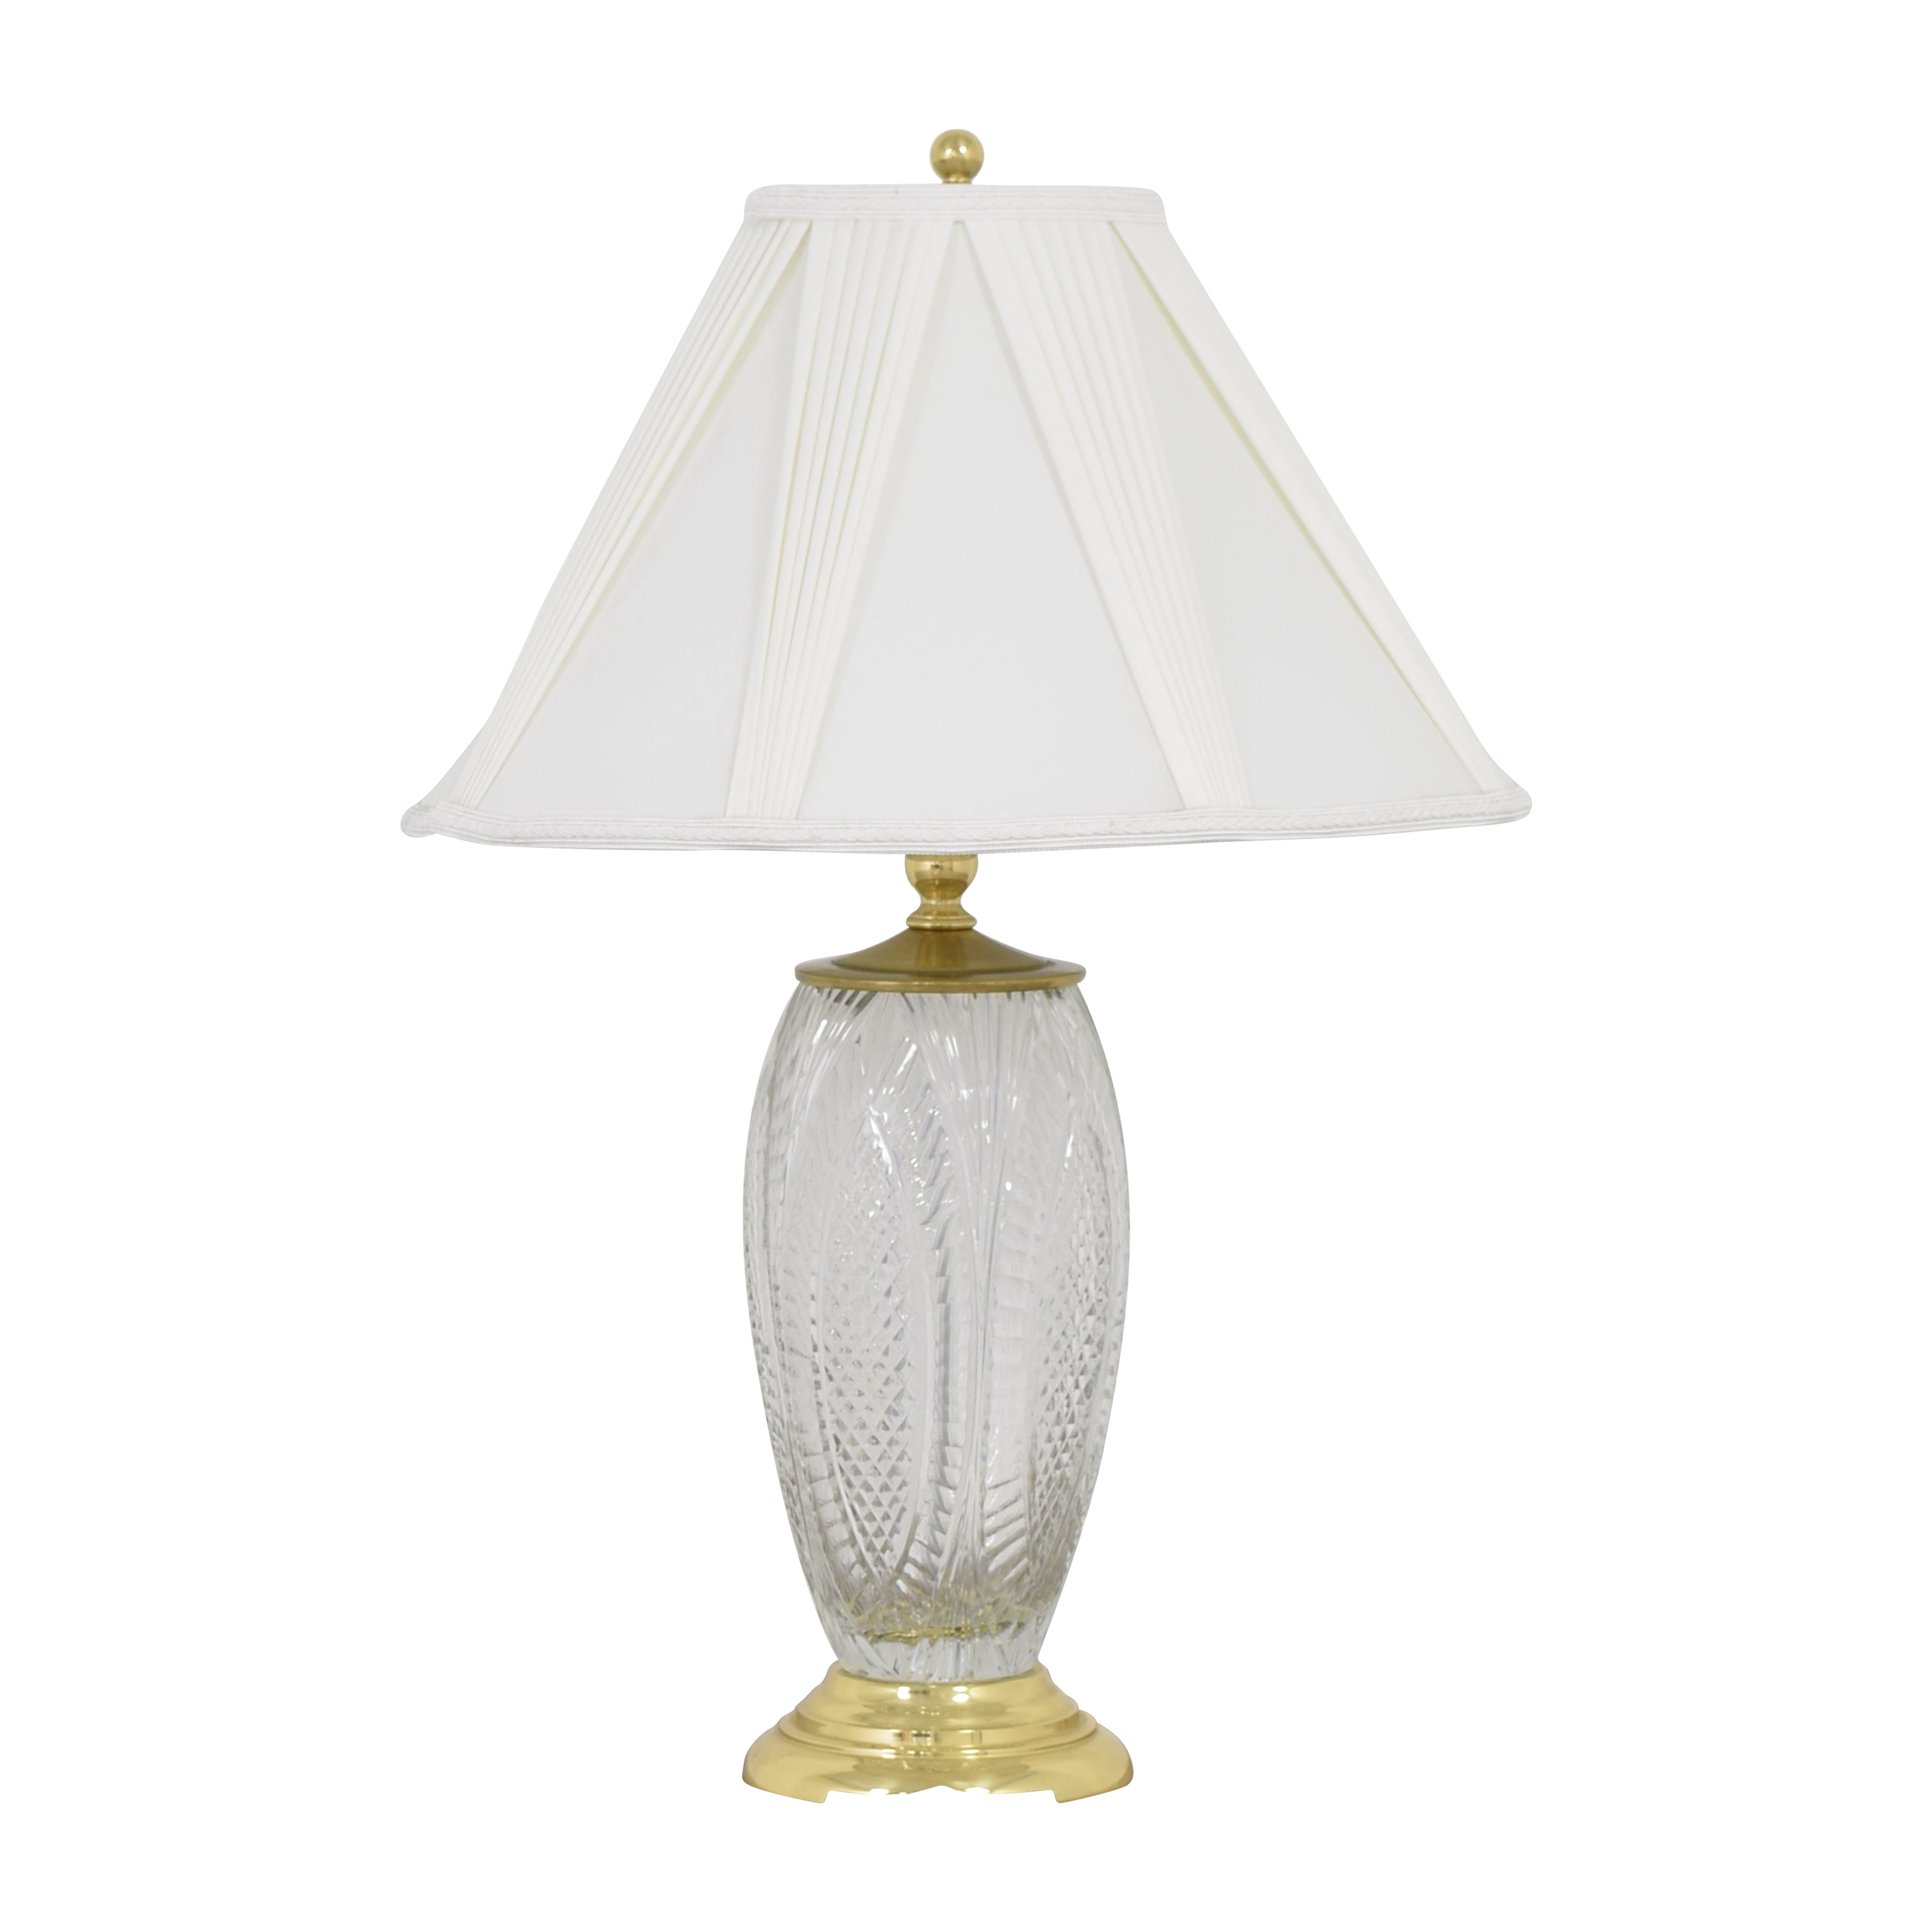 Waterford Waterford Table Lamp ct